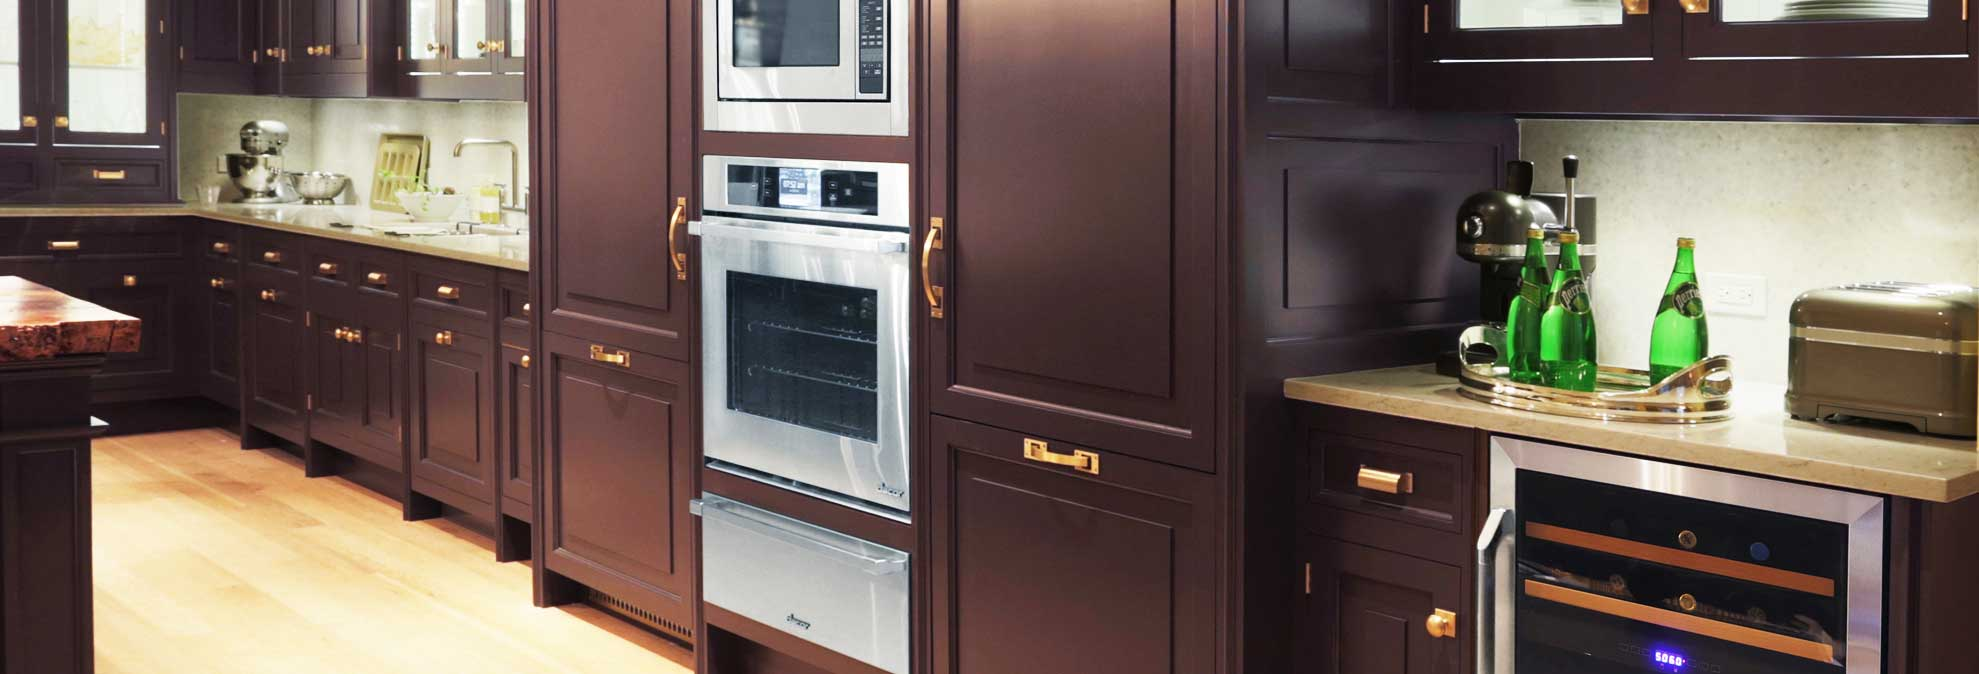 Wall Box Kitchen Cabinet